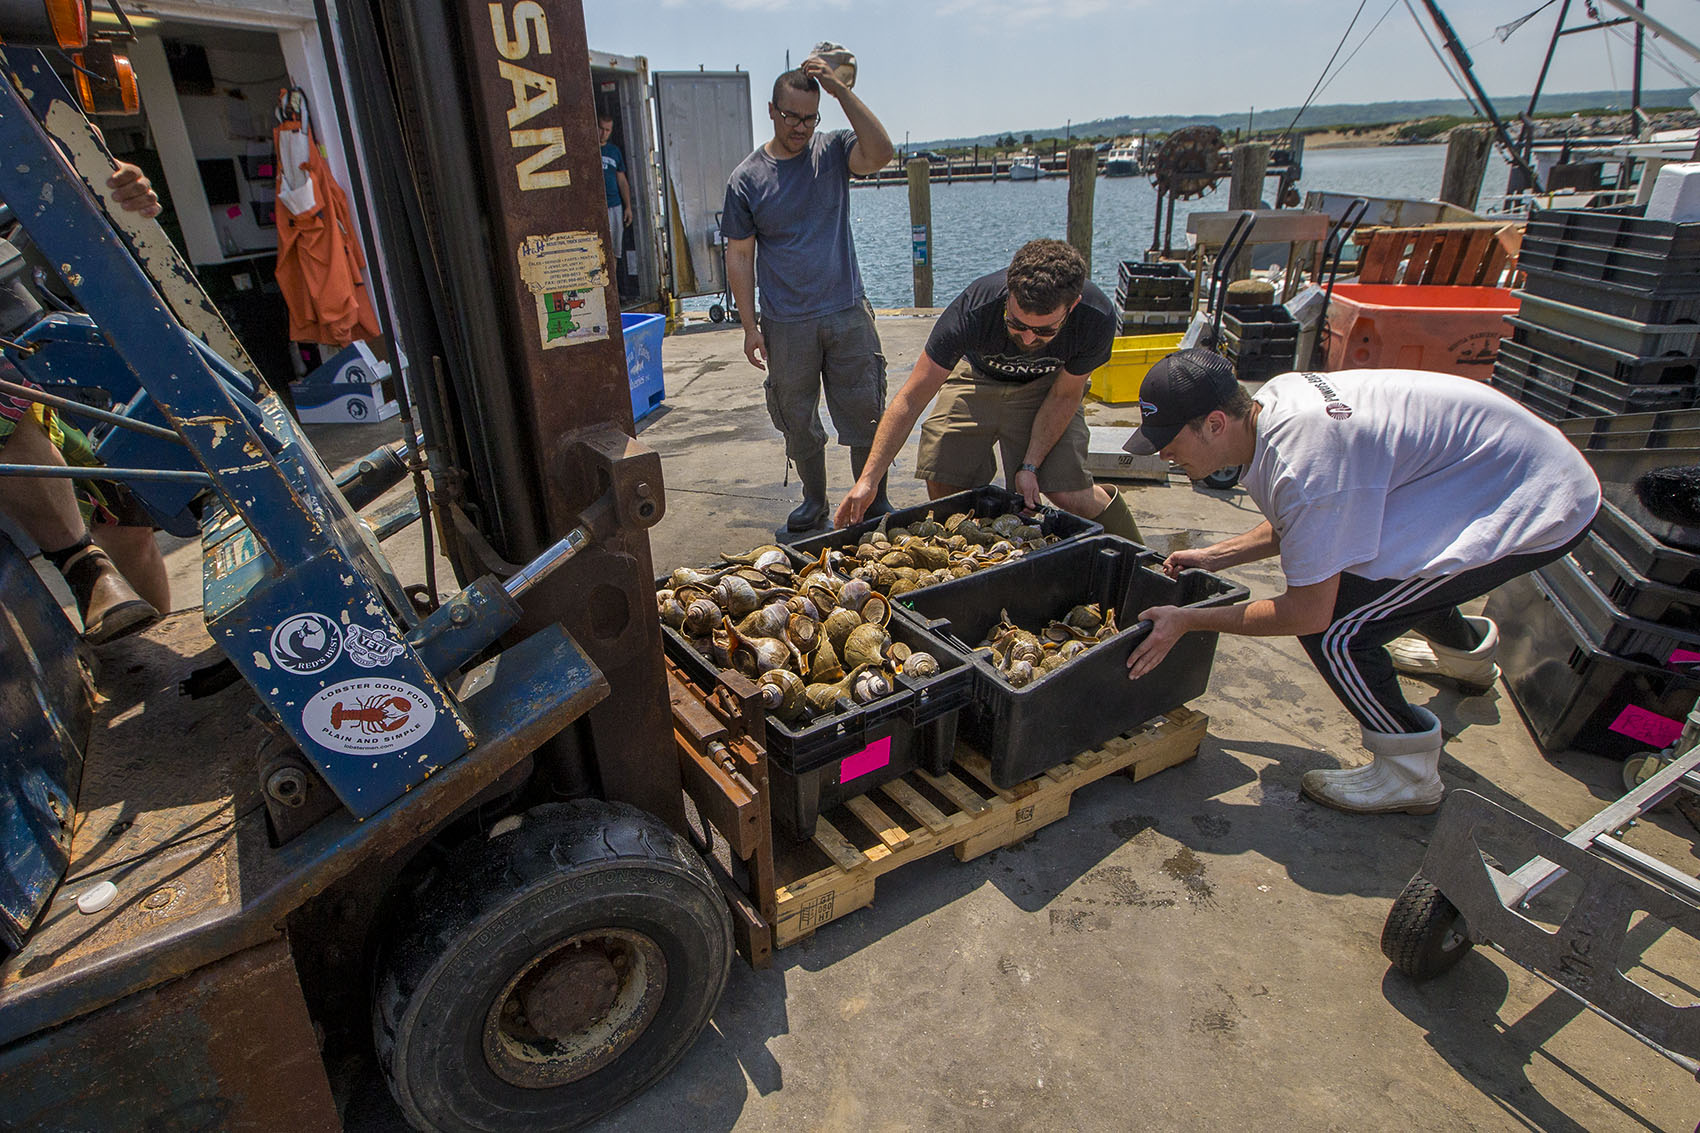 Workers from the Menemsha Fish House on Martha's Vineyard load bins of conch onto a forklift. (Jesse Costa/WBUR)